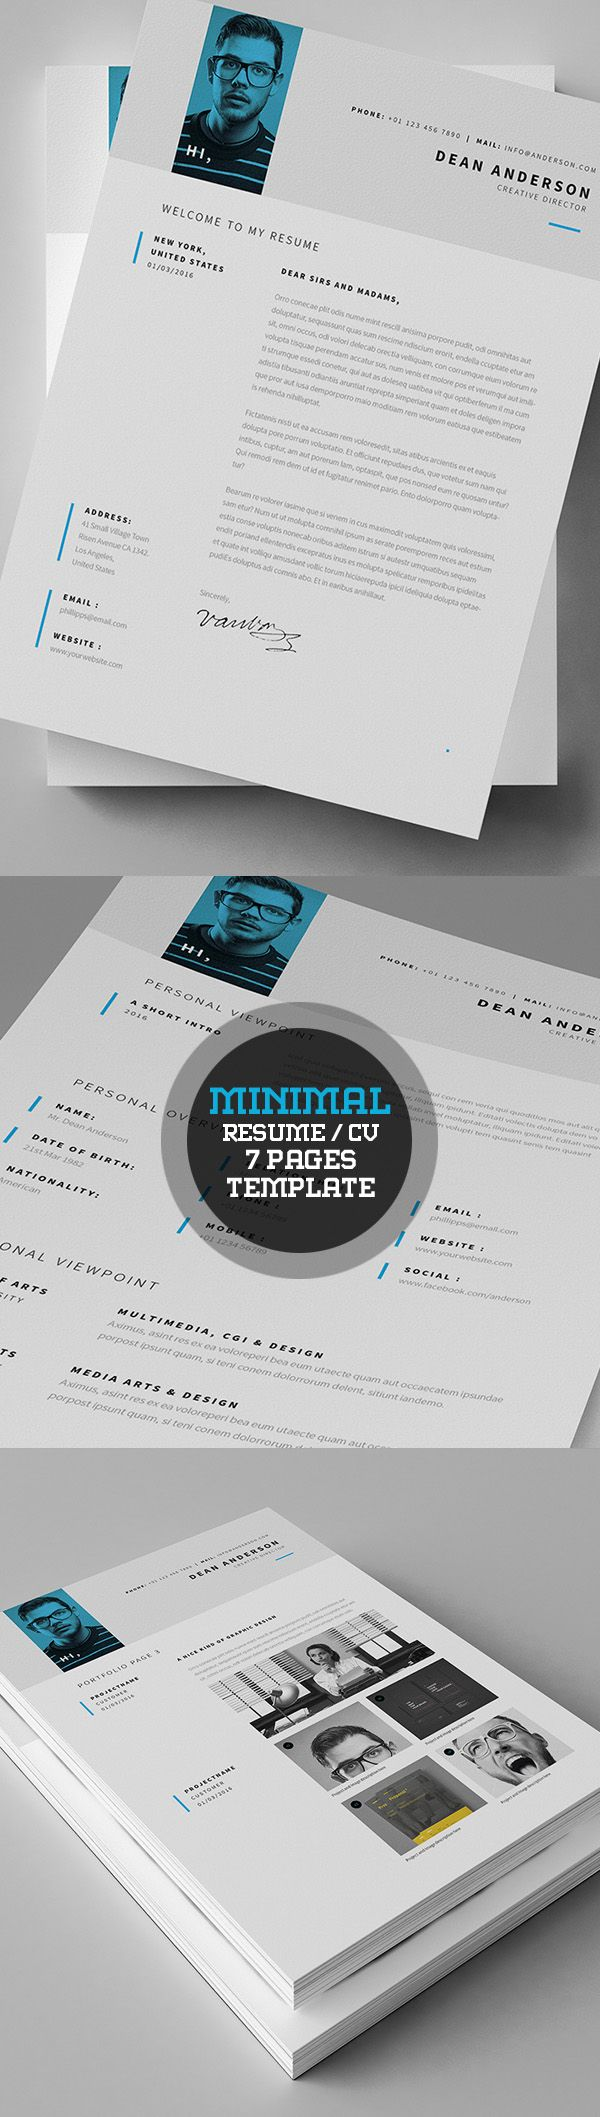 Cv Template To Fill In Home Europass Blank Cv Template Uk Sample